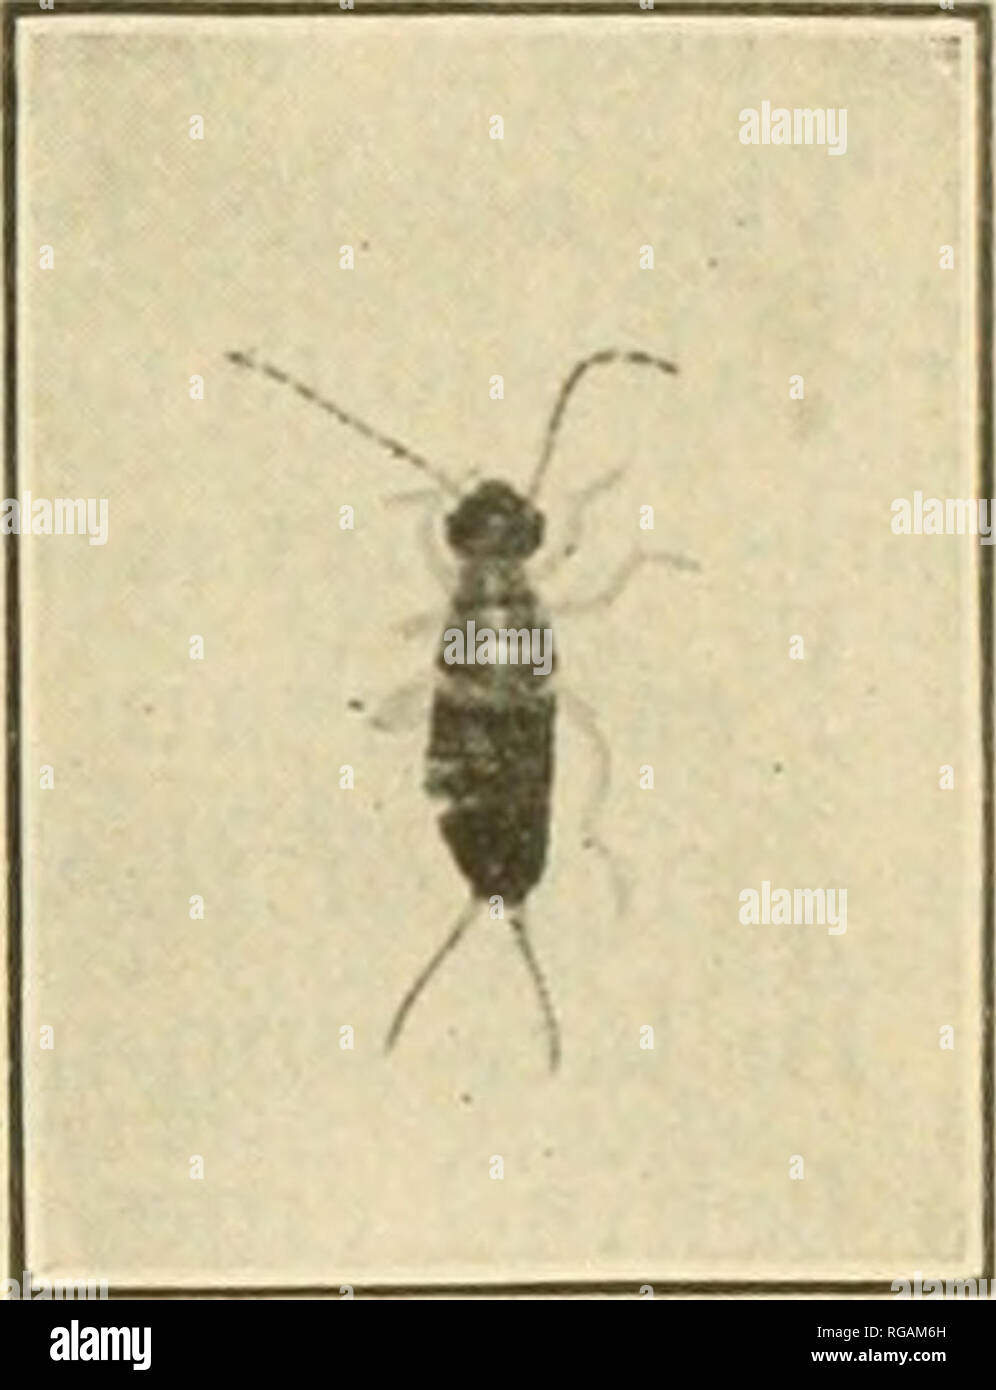 . Bulletin of the U.S. Department of Agriculture. Agriculture. THE EUROPEAN EARWIG AND ITS CONTROL. larva stages The change legs and a dull-brown head (fig. 3). There are foui which gradually approach the adult in size and color, from the fourth larva stage to the adult form takes place about July 18. When first hatched the larvae leave their under- ground nests, most noticeably on warm nights about two hours after dark. They swarm over the ground, but usually stay within 2 or 3 feet of the entrance to their nest. On cold nights few can be found. As they grow older they are active even on cold - Stock Image